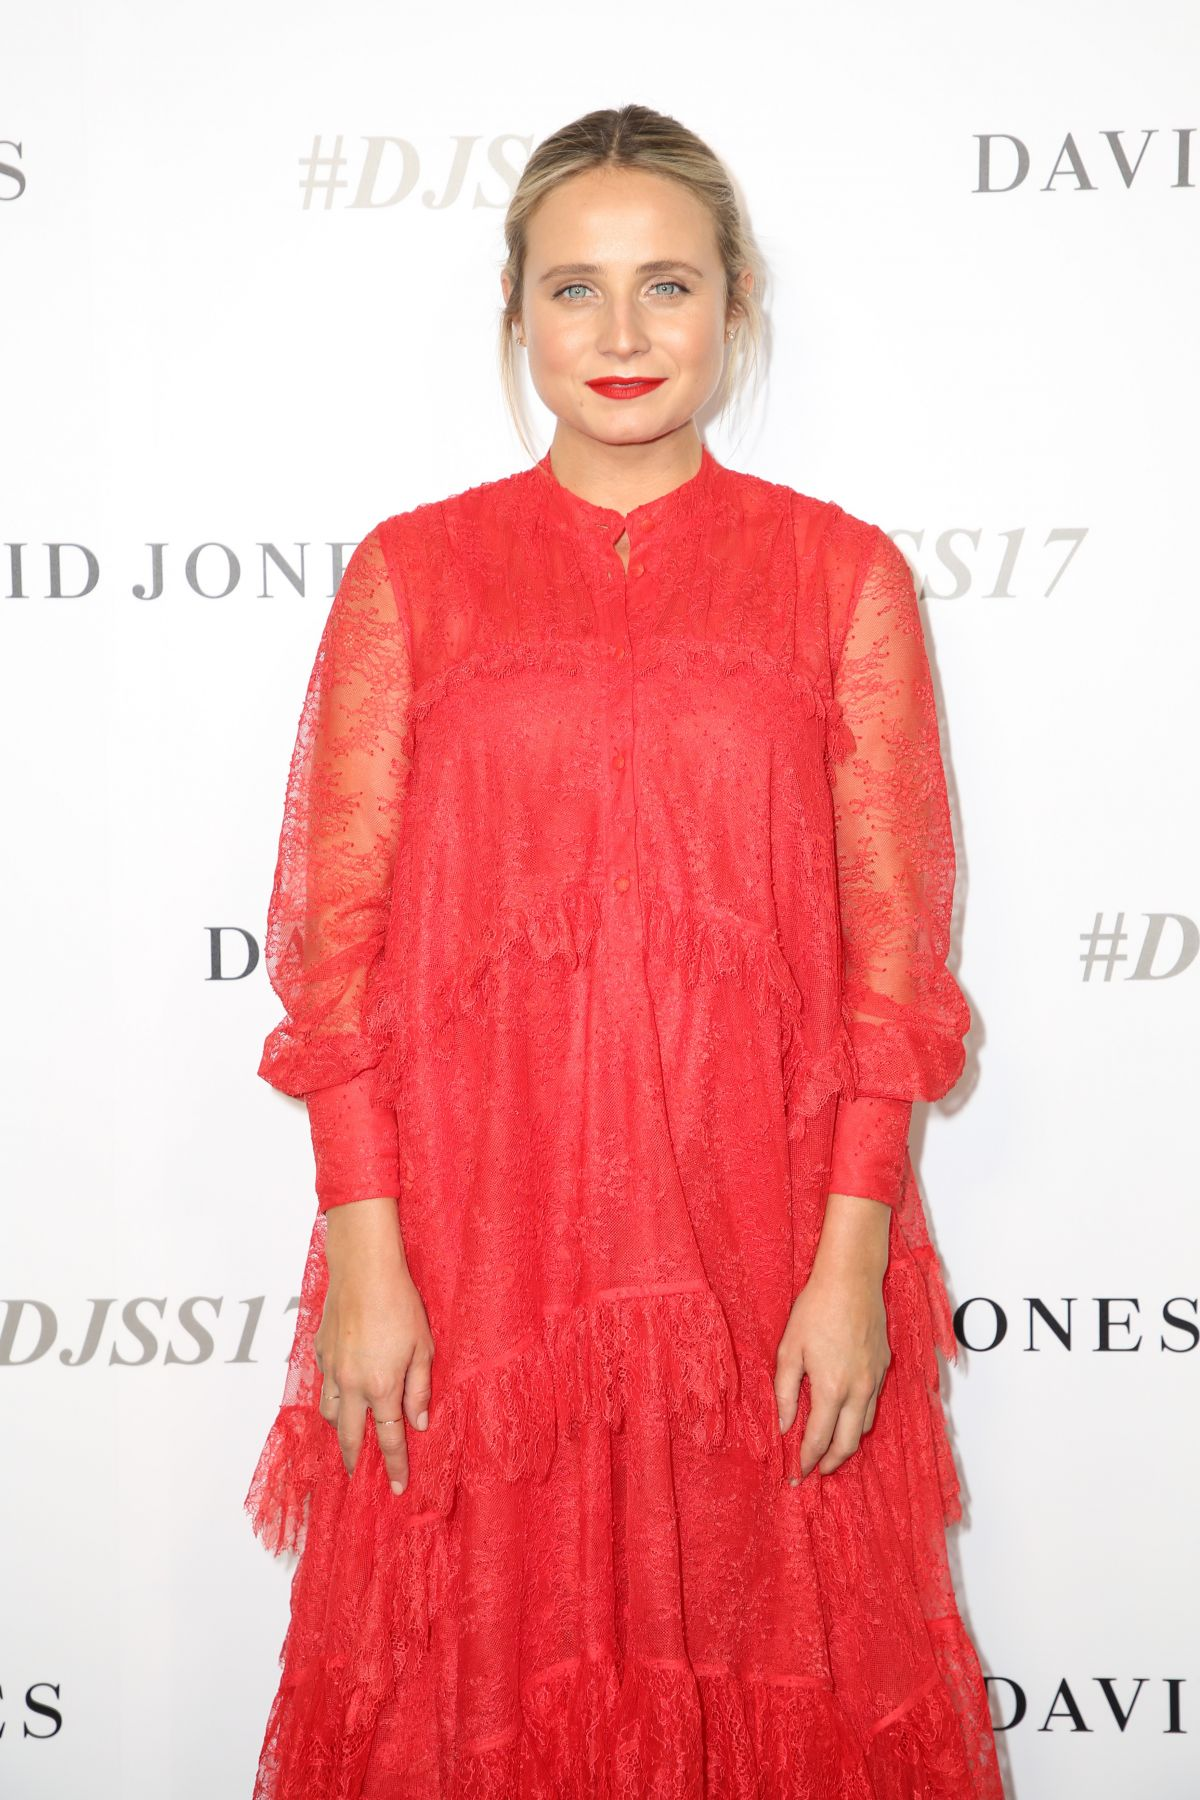 TESSA JAMES at David Jones S/S 2017 Collections Launch in Sydney 08/09/2017